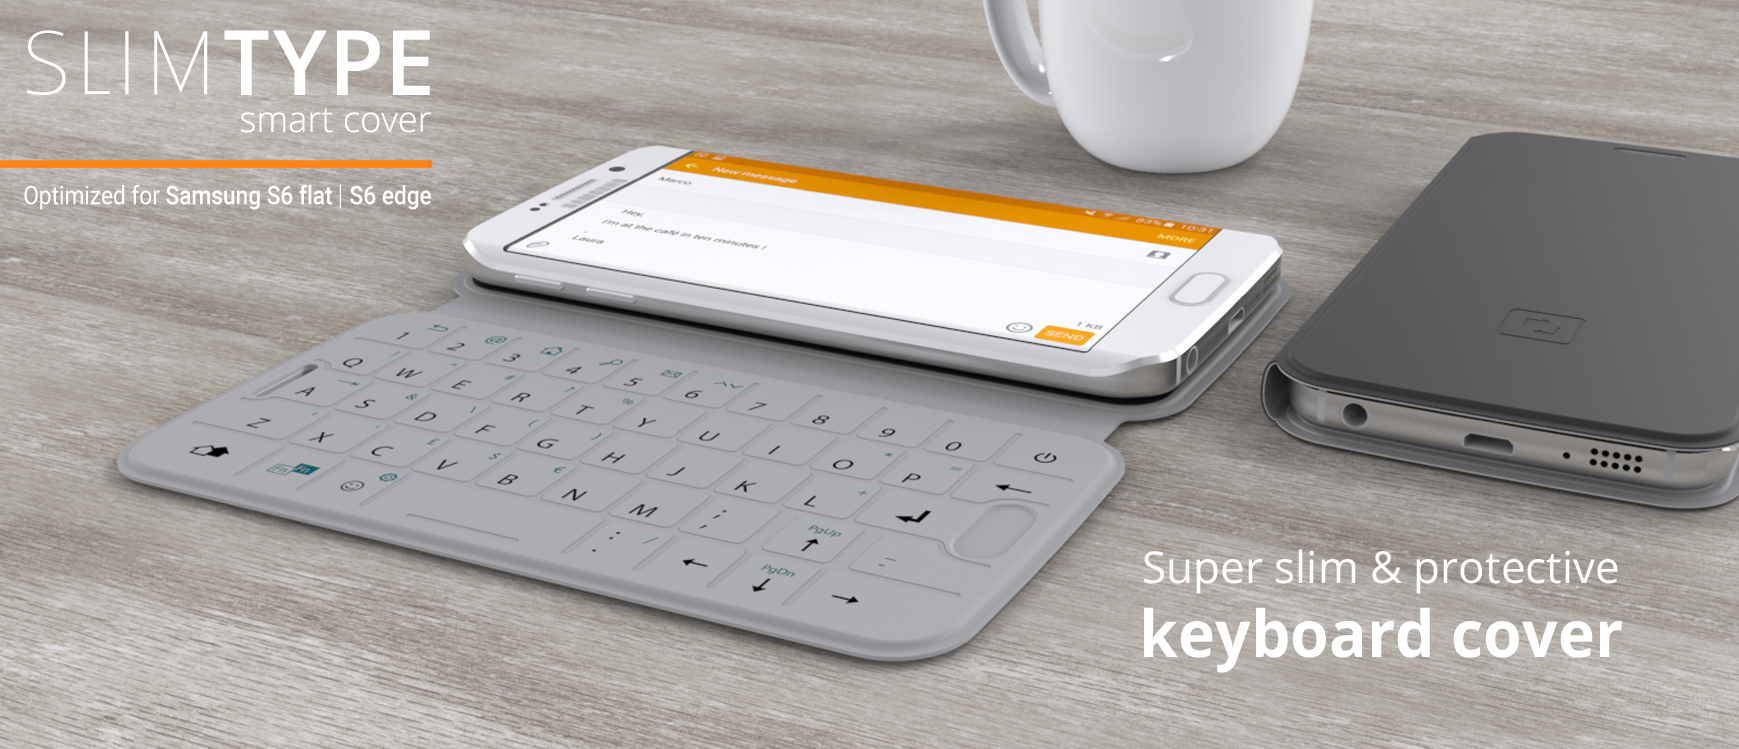 Galaxy S6 and S6 edge get NFC-enabled QWERTY keyboard case from One2Touch